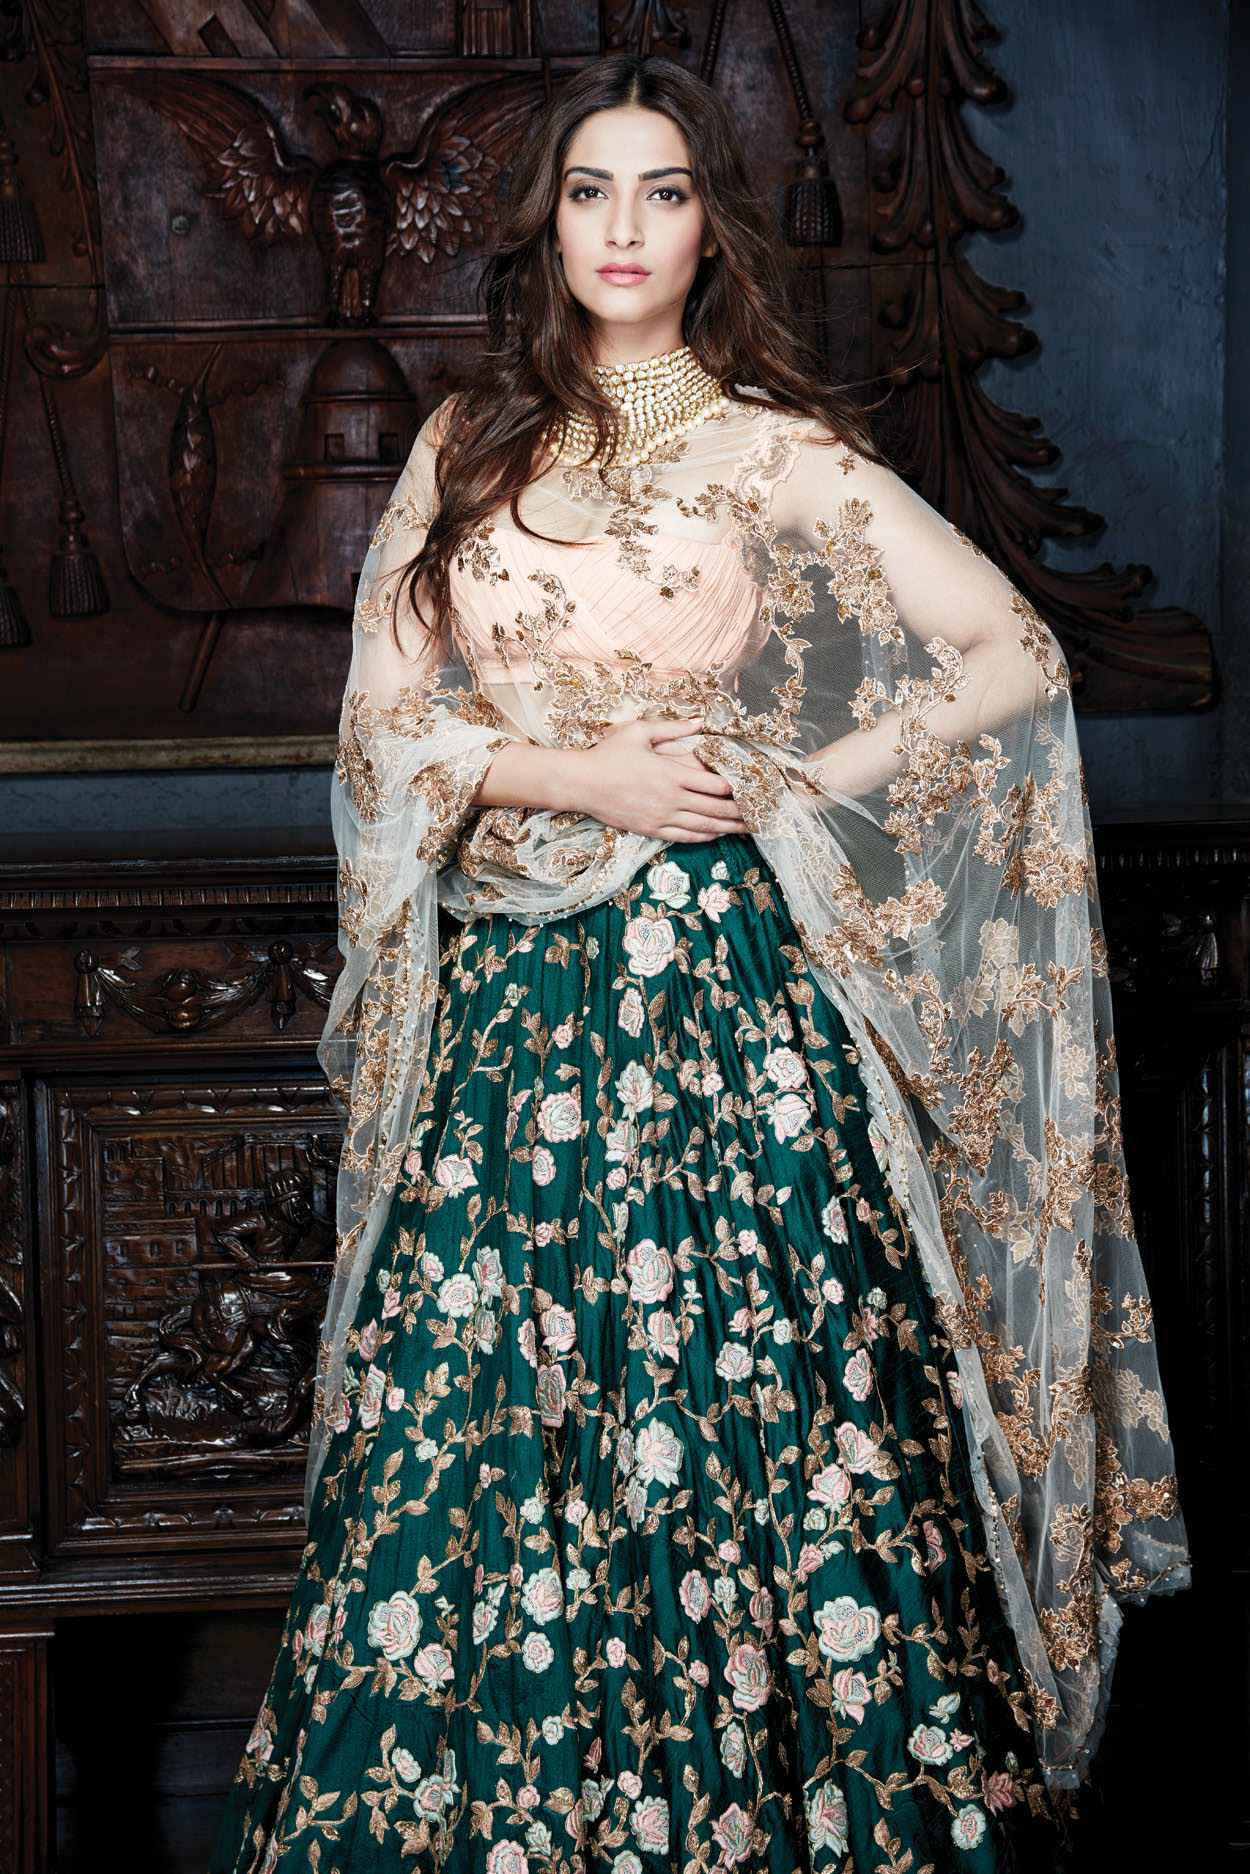 sonam-kapoor-floral-lehenga-indian-celebrity-inspired-looks-1